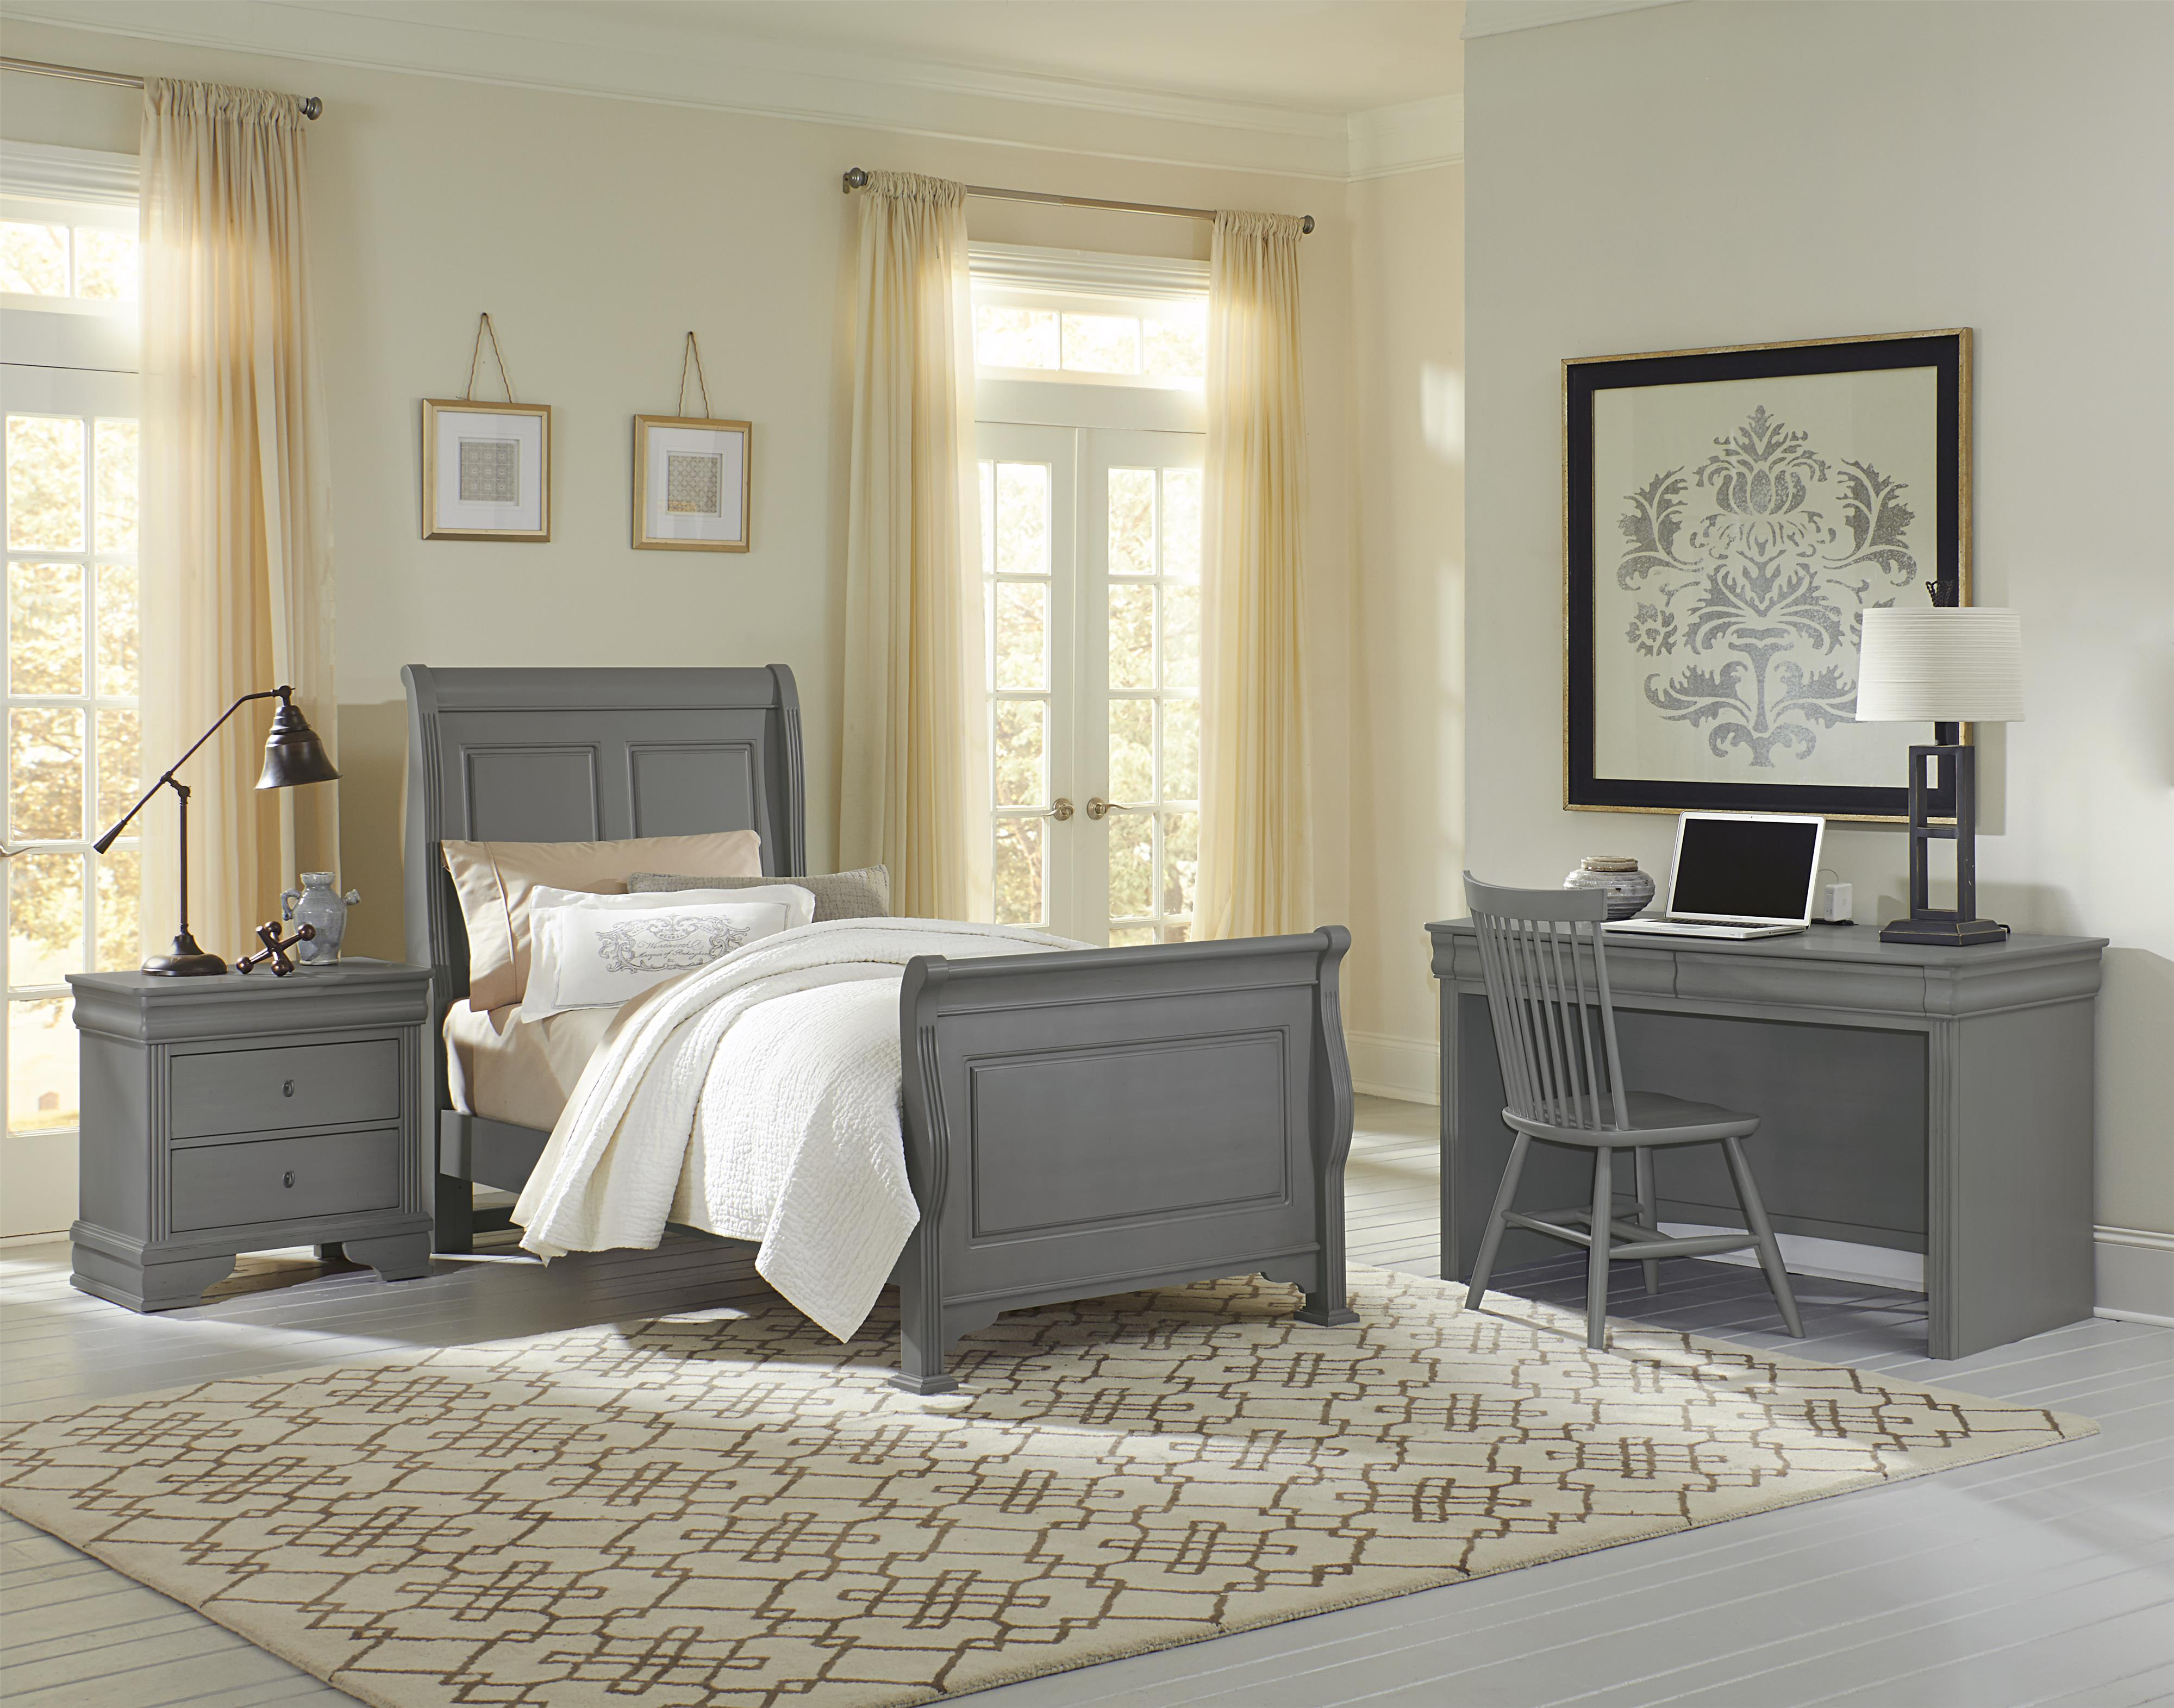 white bed dresser vaughn panel featuring night furniture vanity pin homedecor collection bassett vaughan bedroom stand children mirror storage and cottage chest